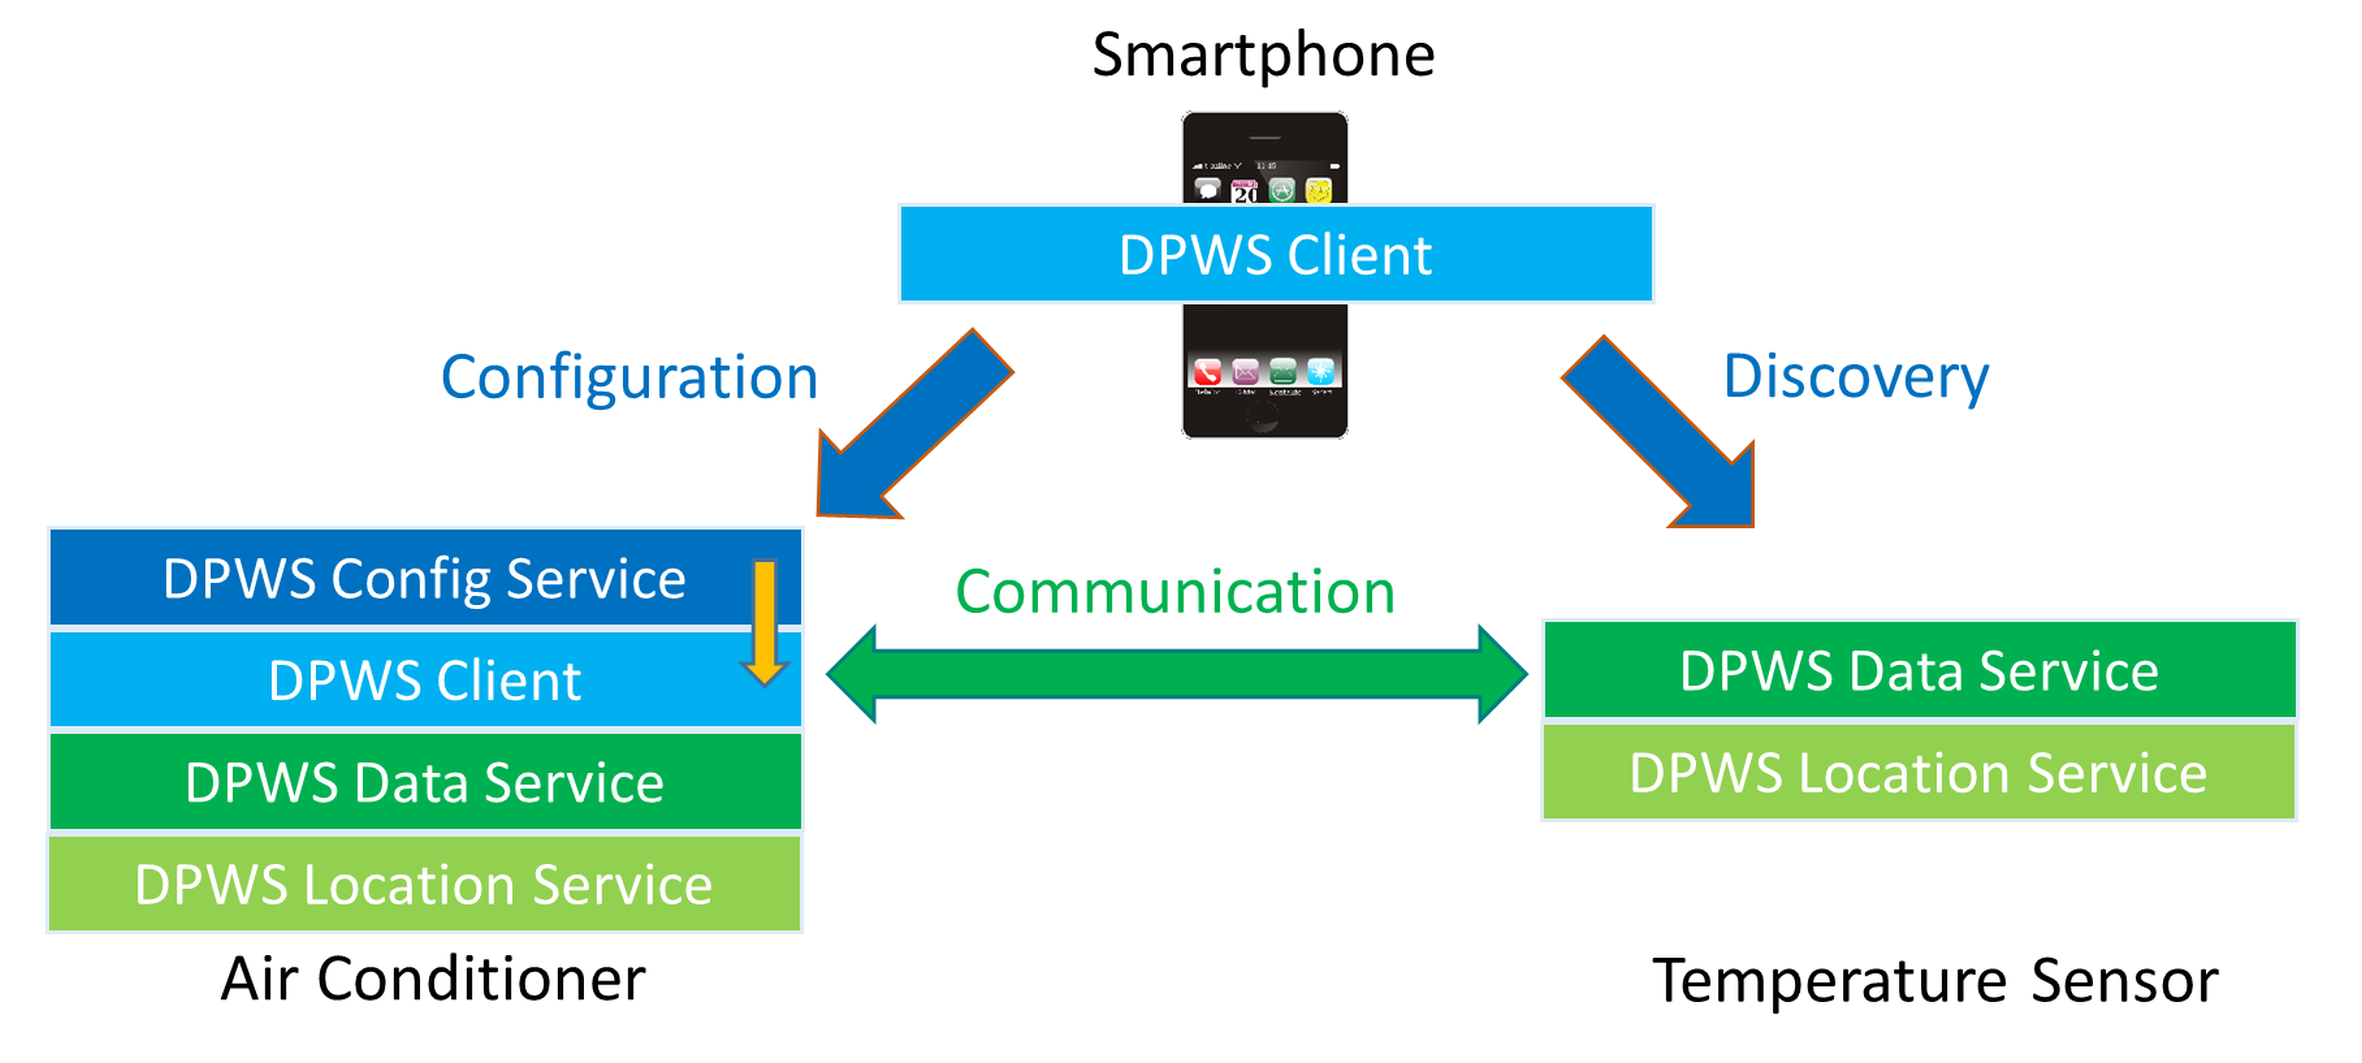 Figure 4: Concept for a decentral configuration of Smart Home devices with a smartphone